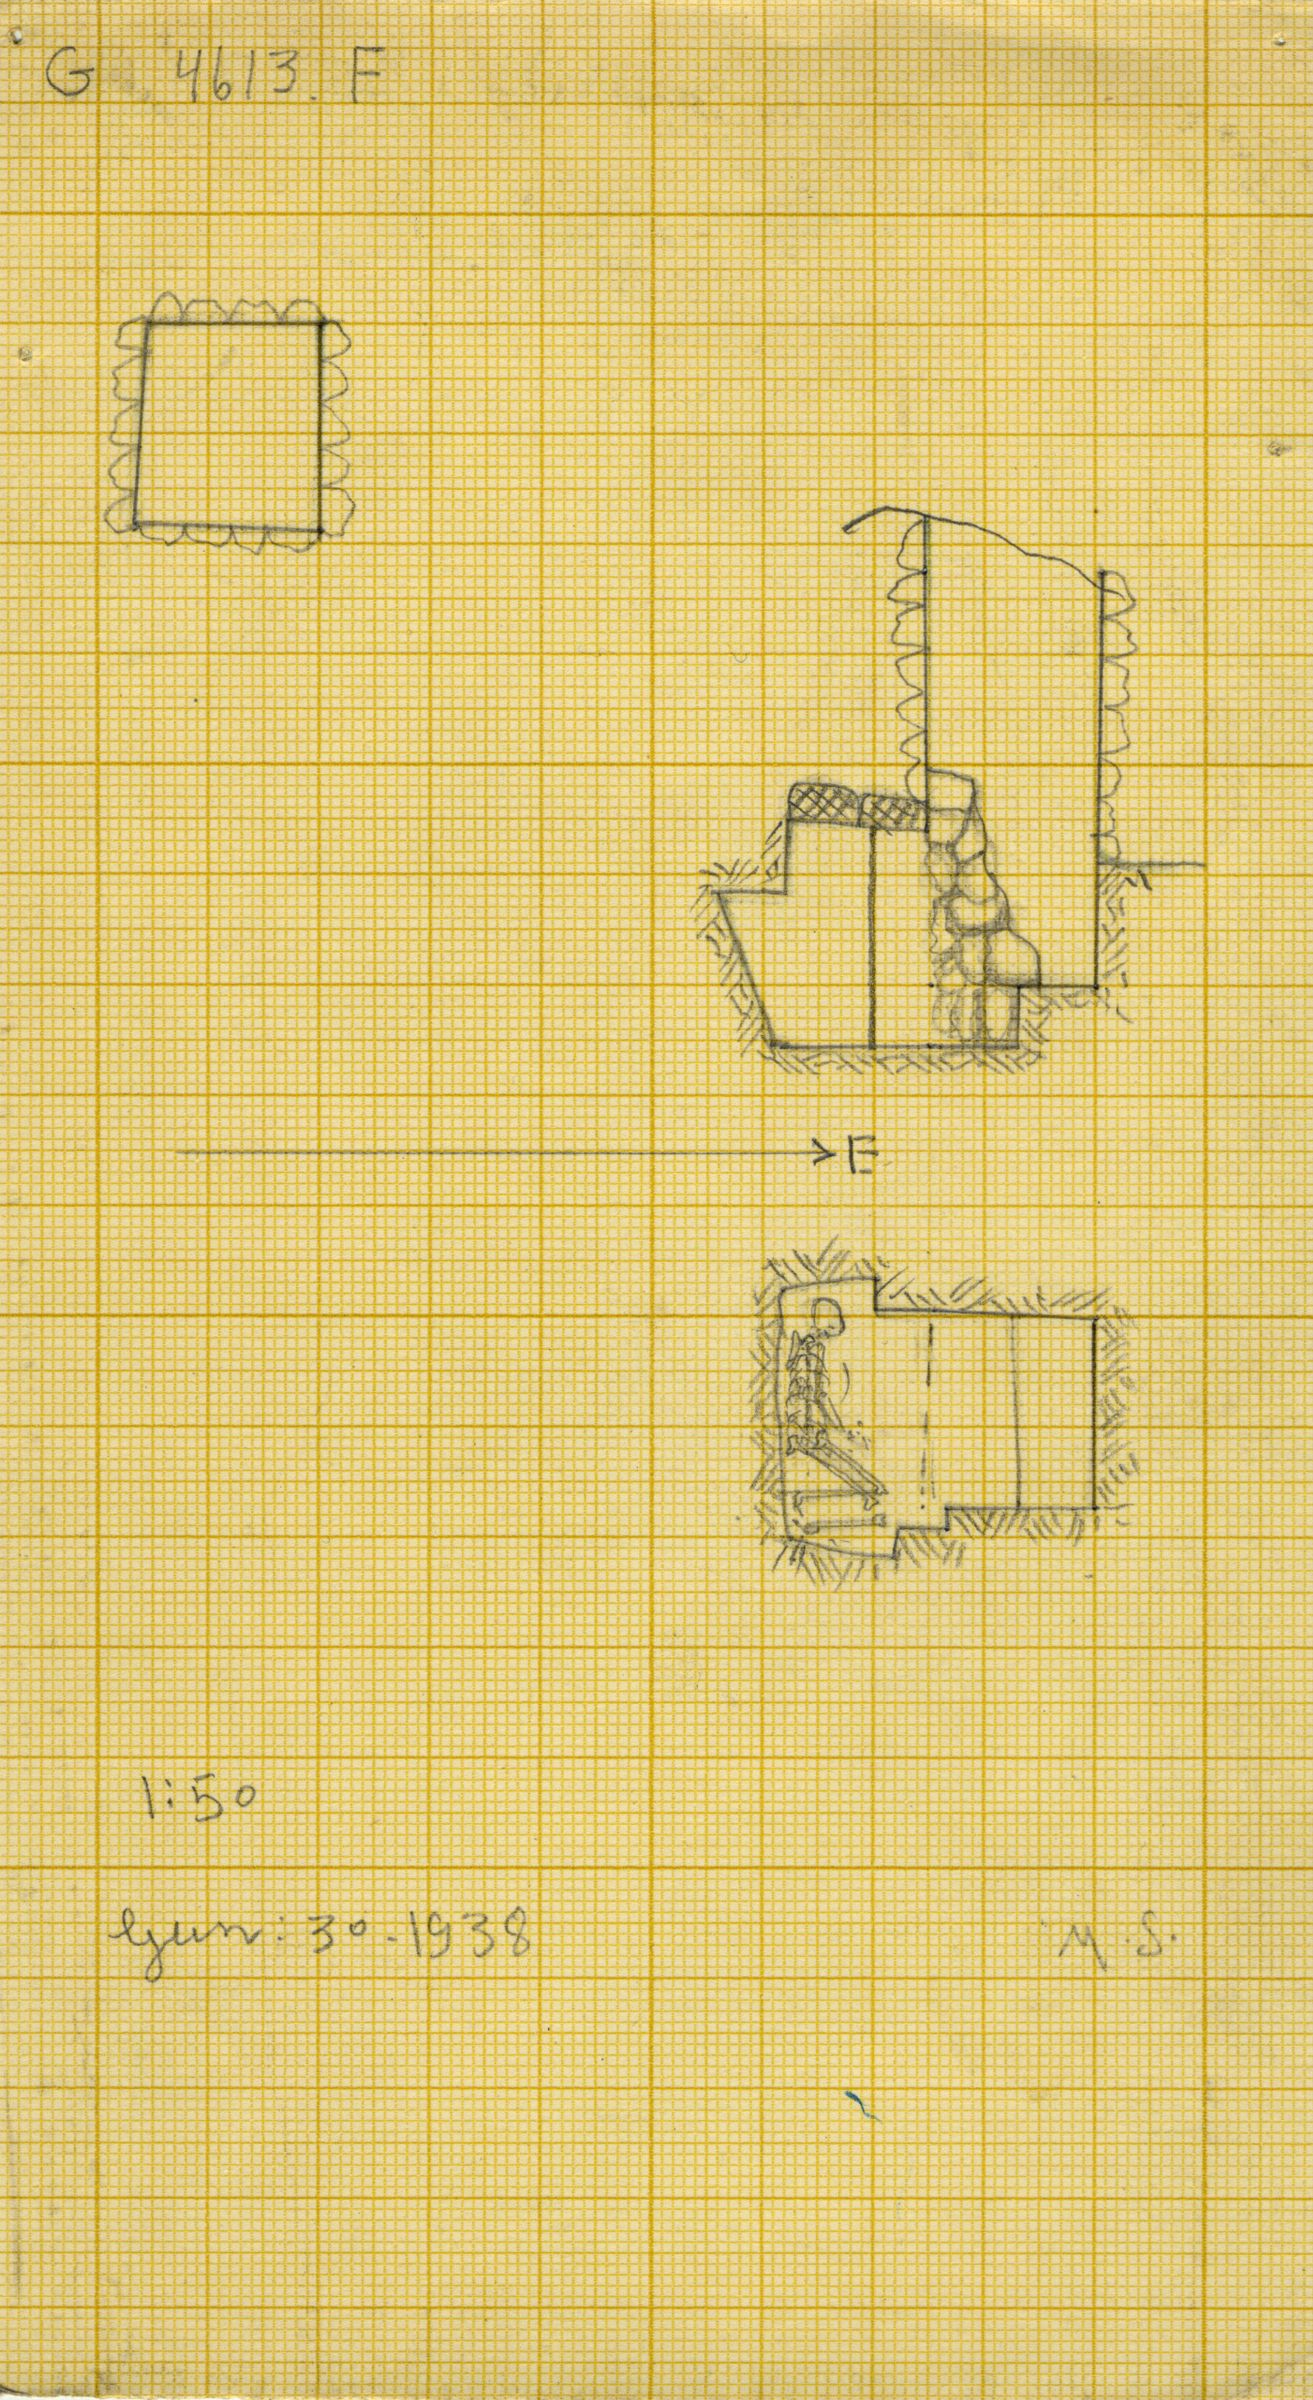 Maps and plans: G 4613, Shaft F